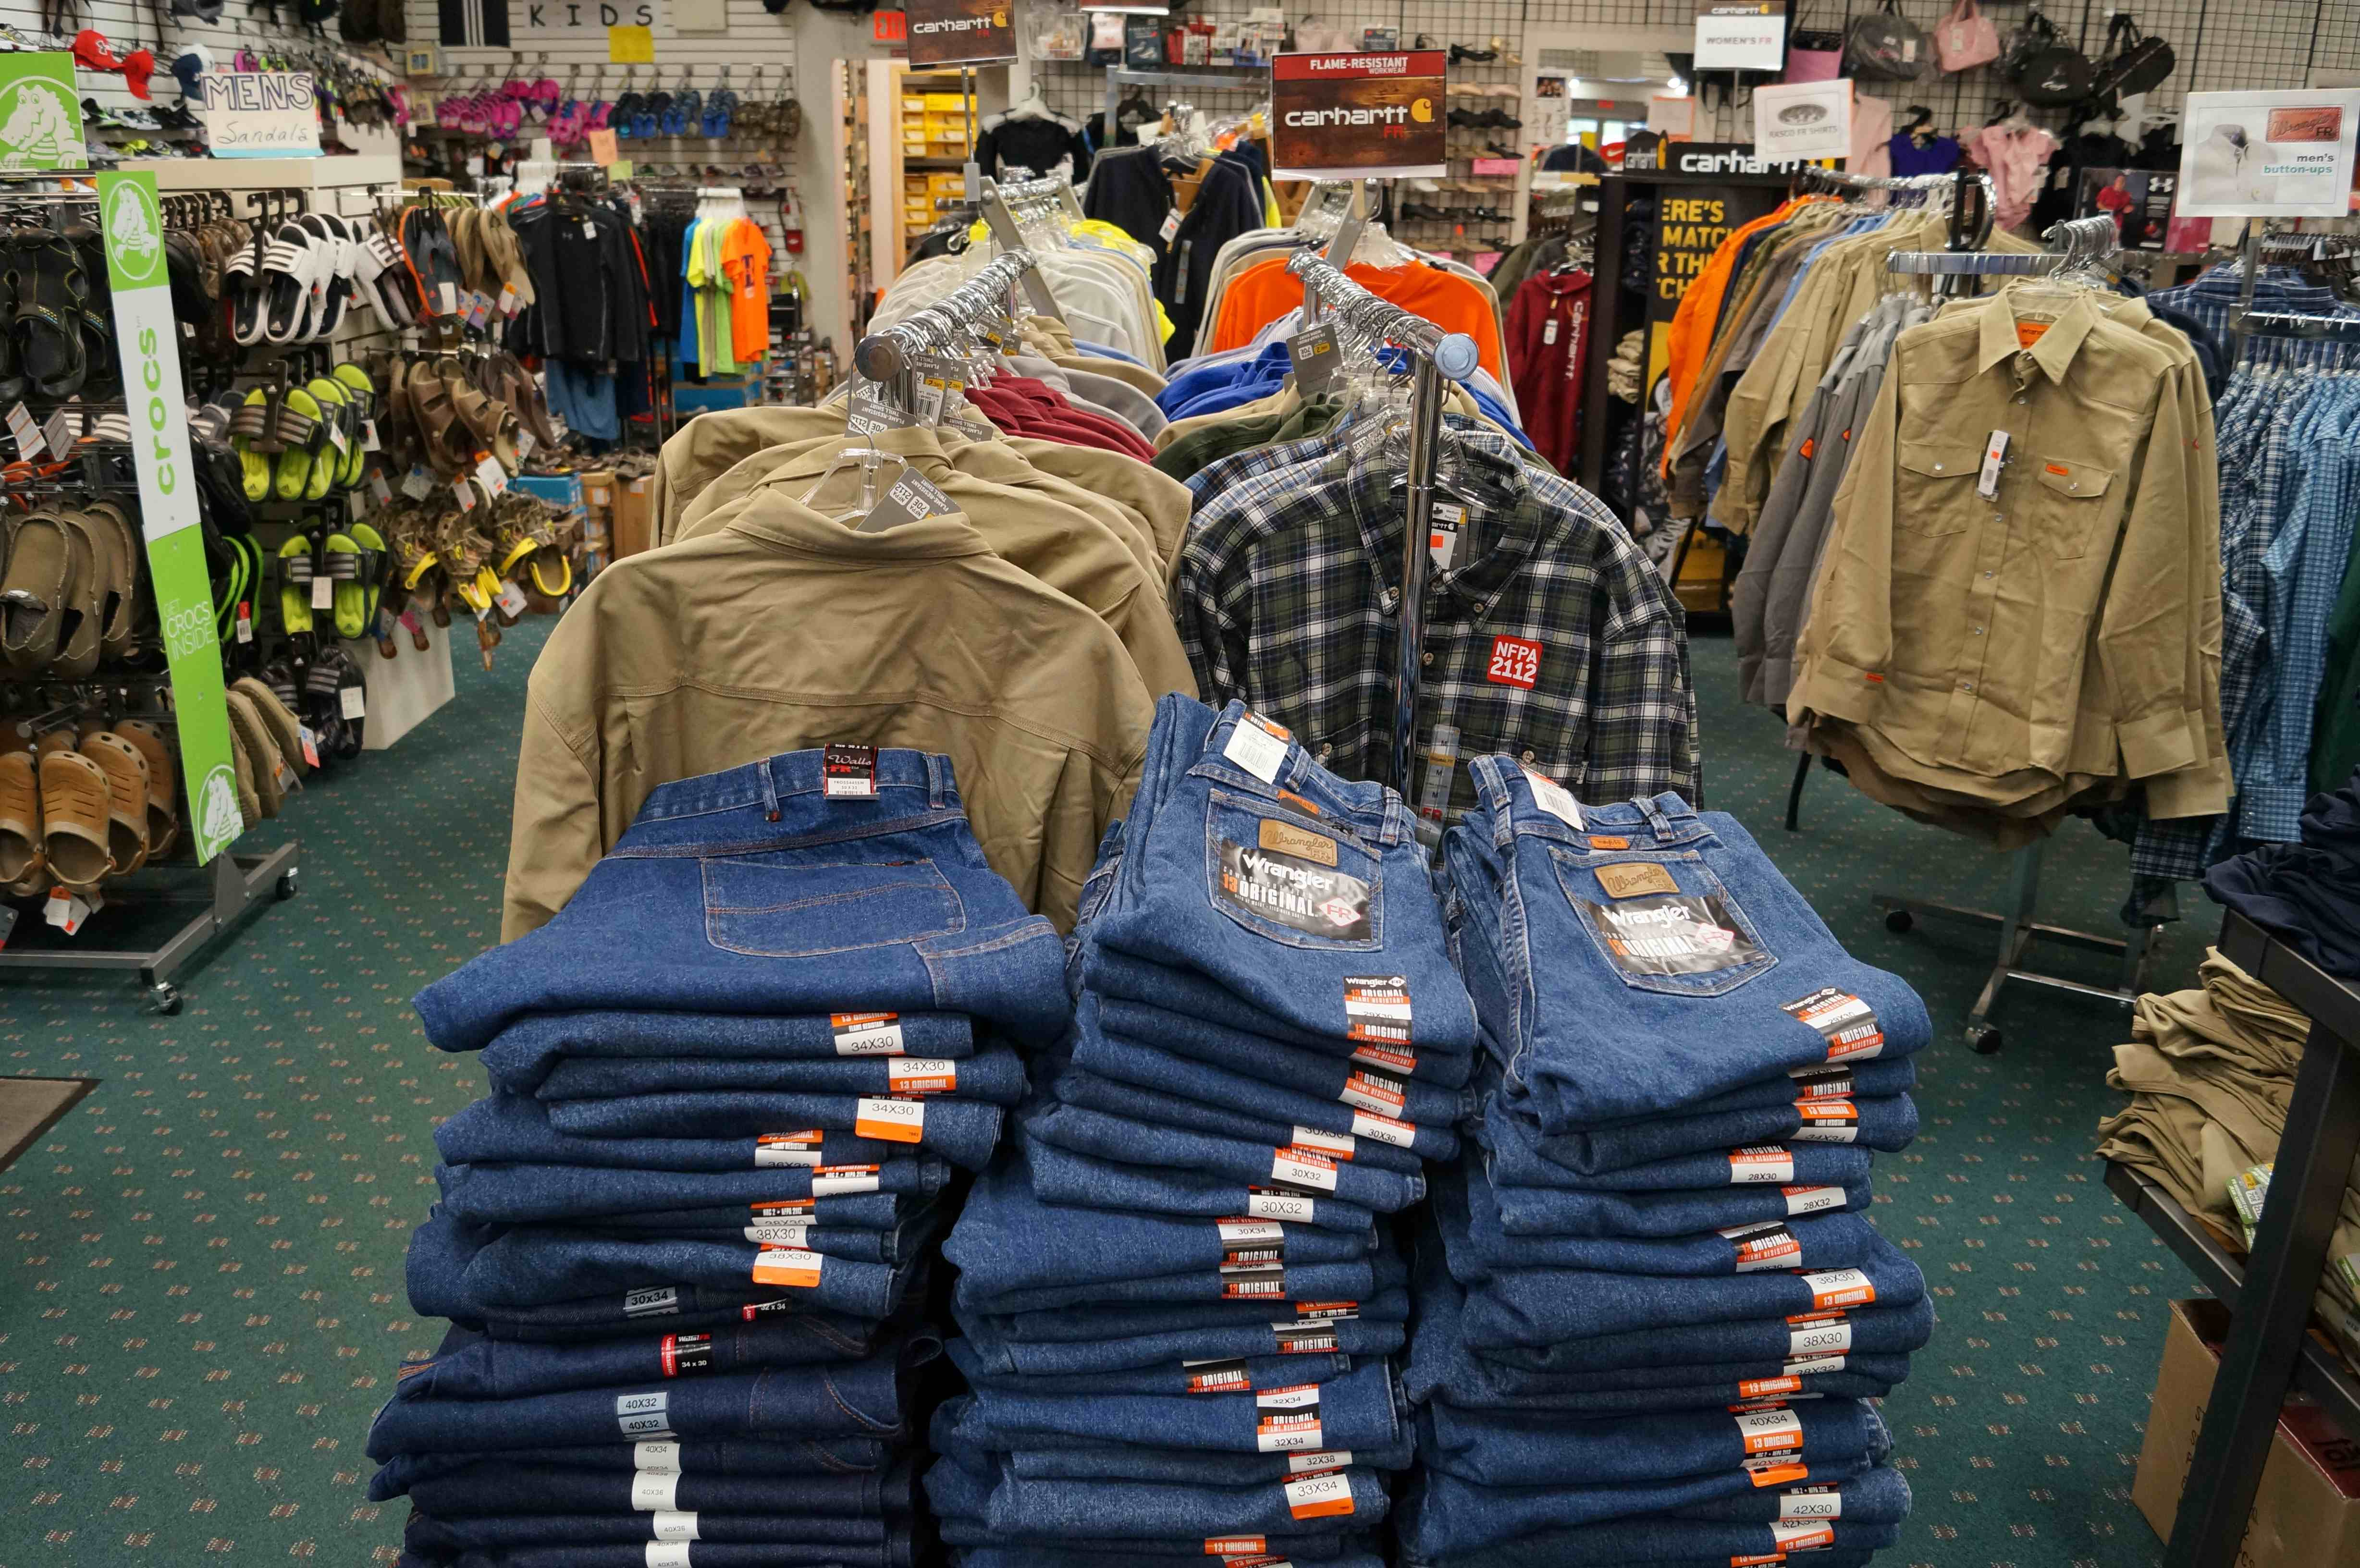 Cheap online clothing stores. Closeout clothing stores